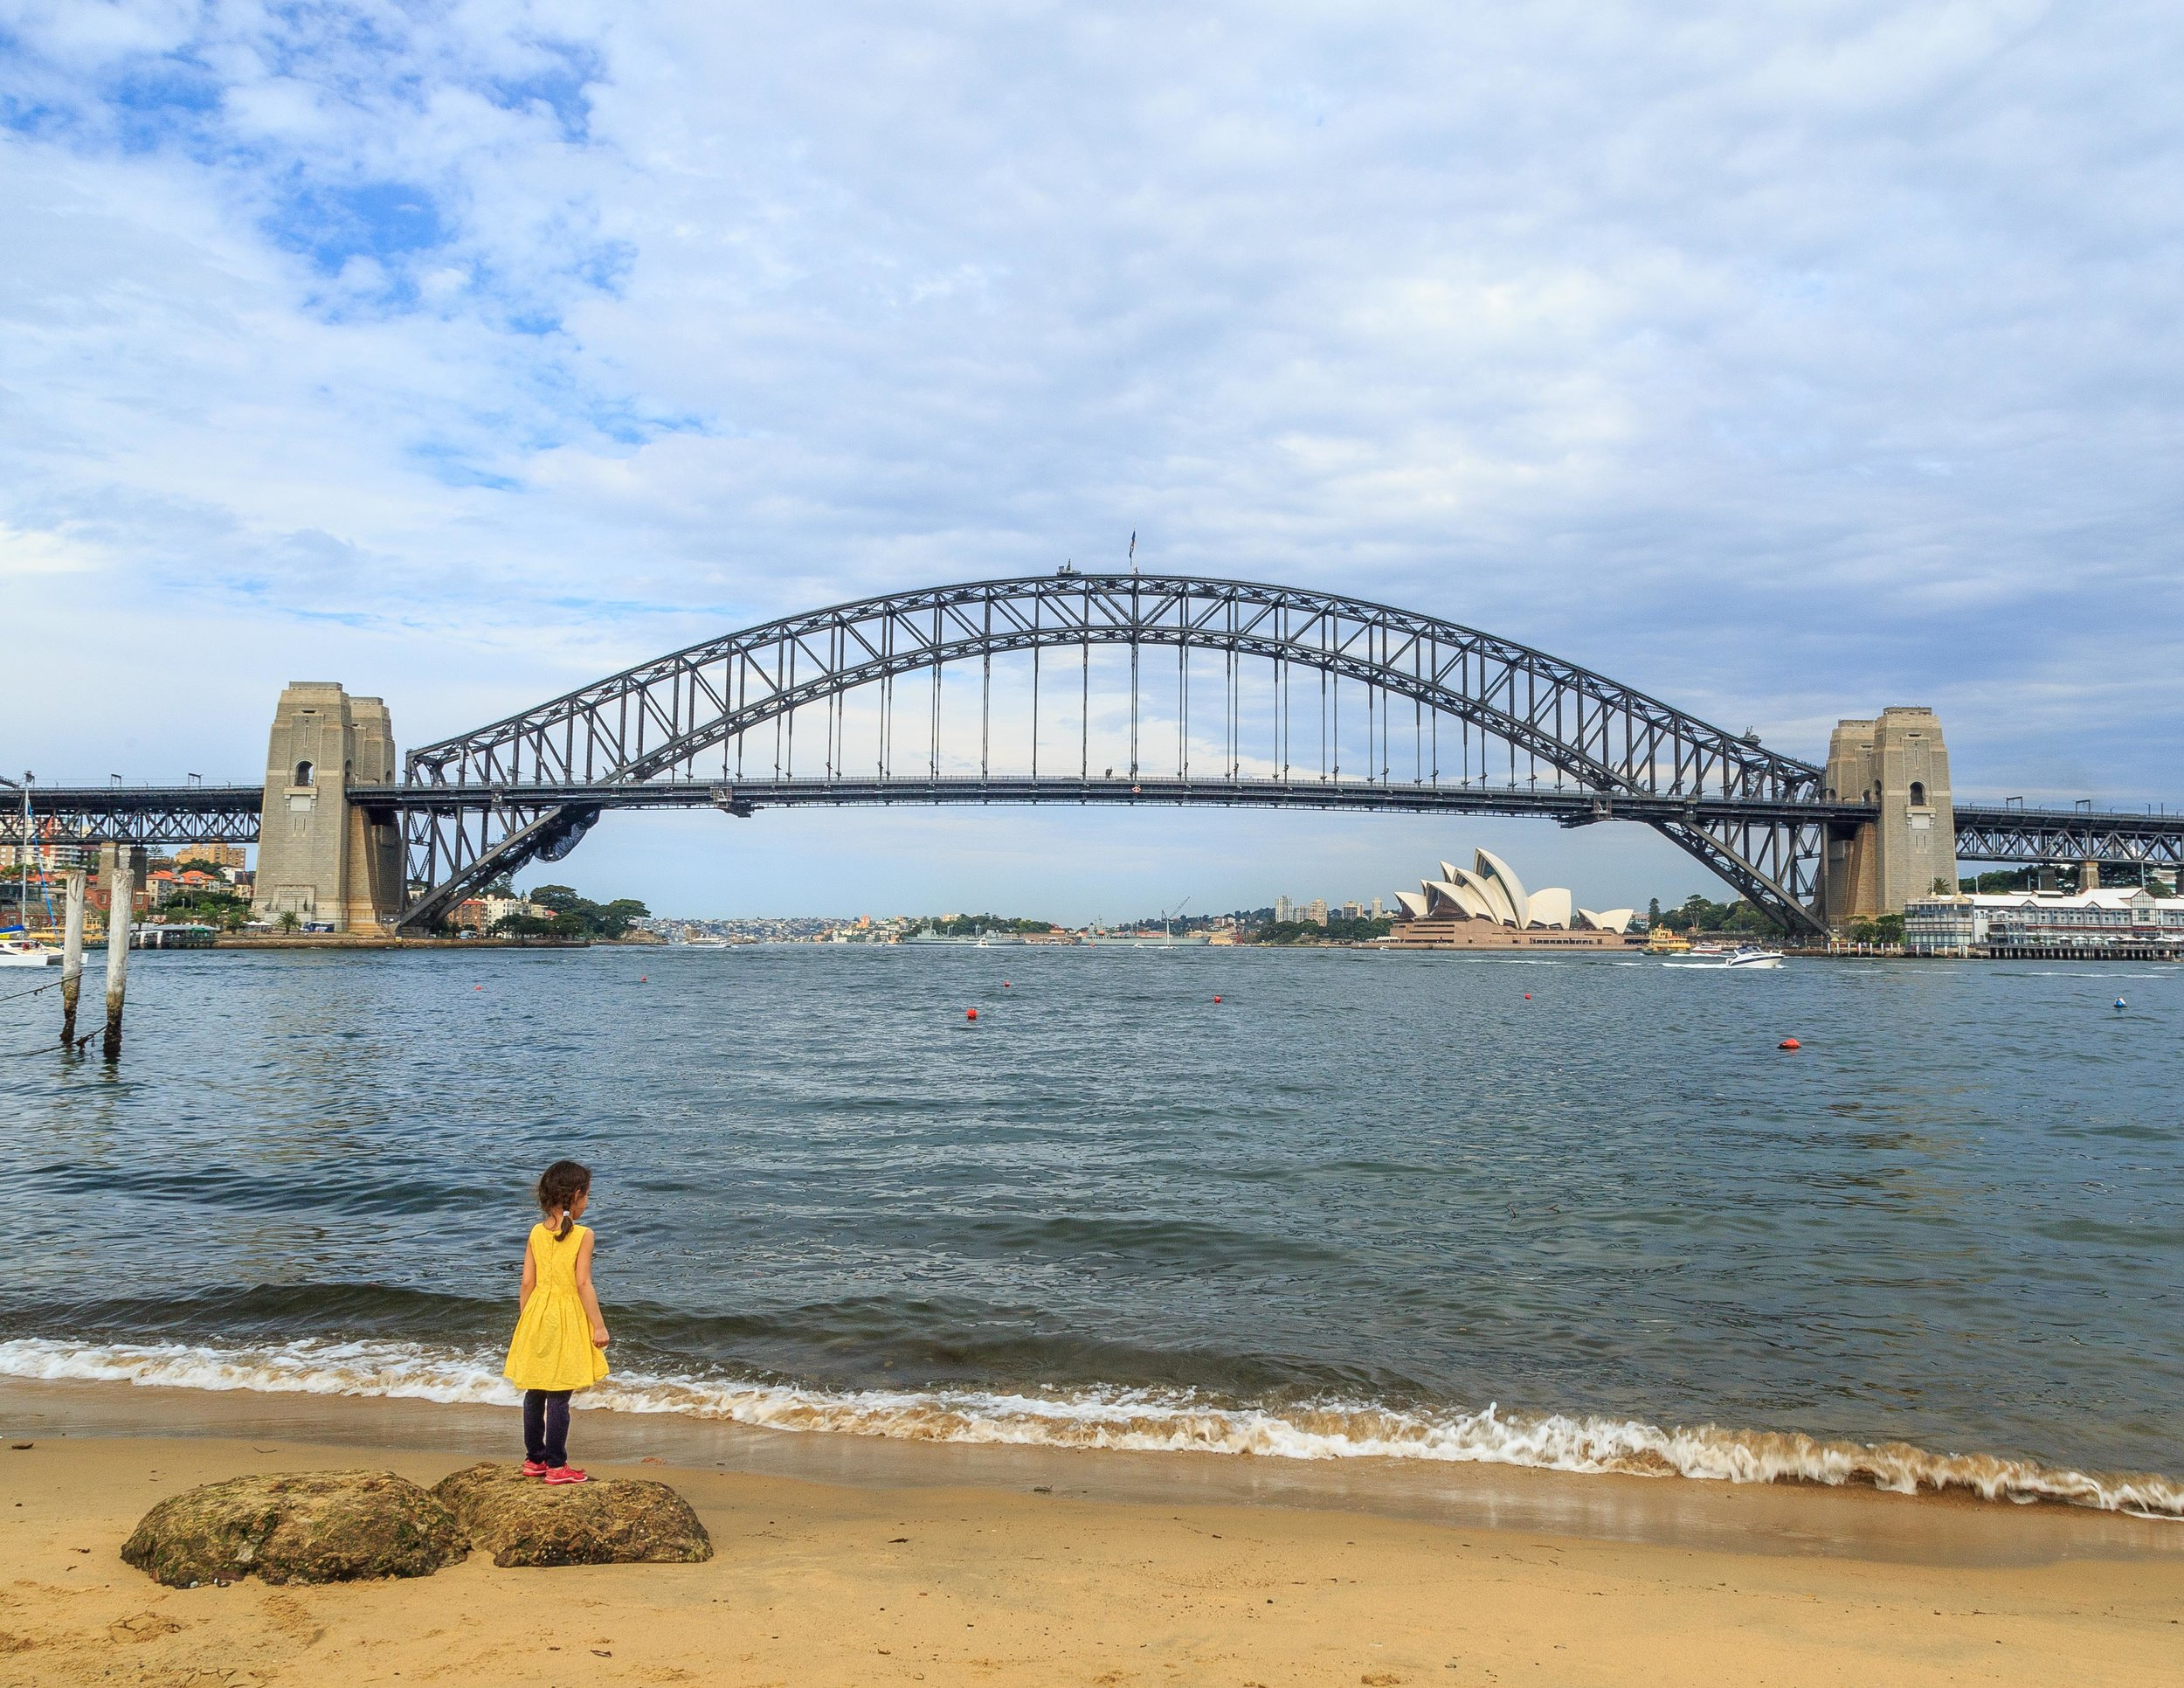 Best views of the Sydney Harbour Bridge - McMahons Point